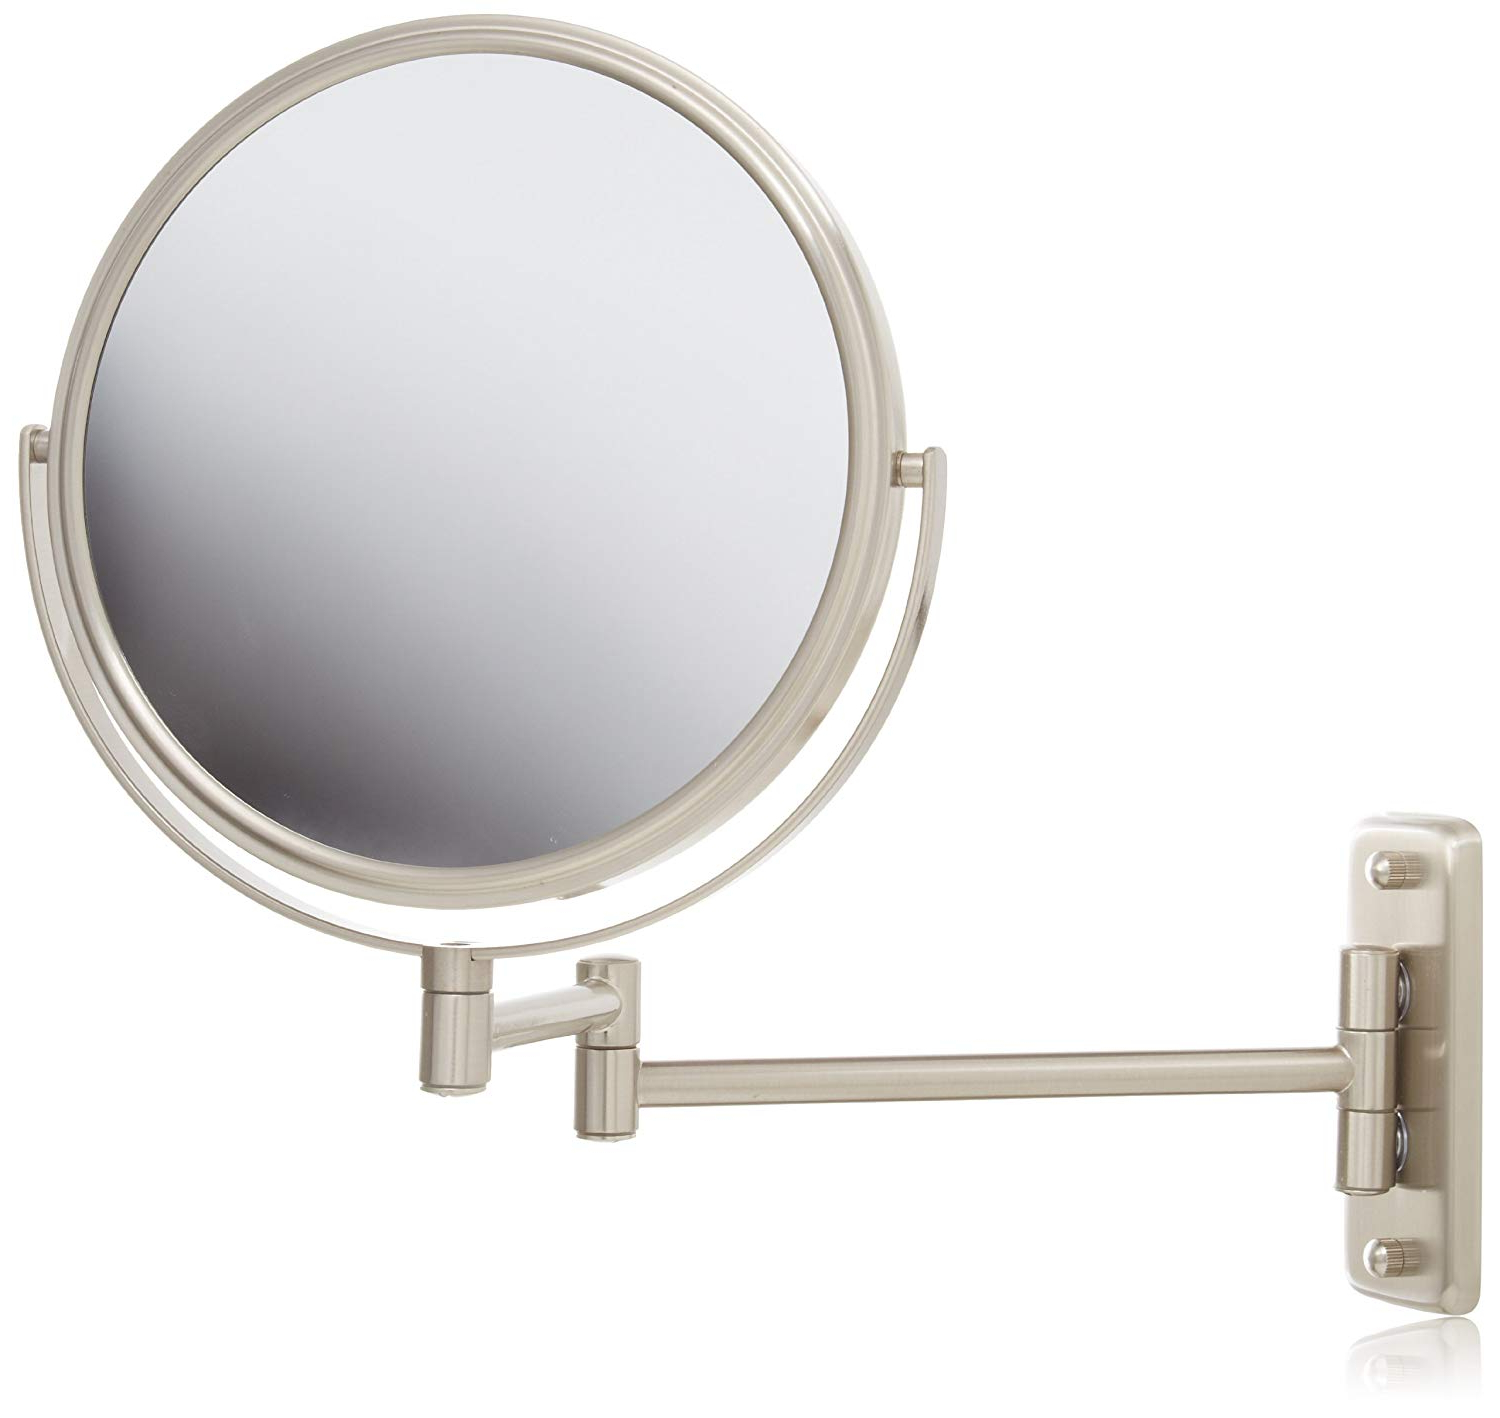 Well Liked Swivel Wall Mirrors Regarding Jerdon Jp7808n 8 Inch Two Sided Swivel Wall Mount Mirror With 8x Magnification, (View 16 of 20)